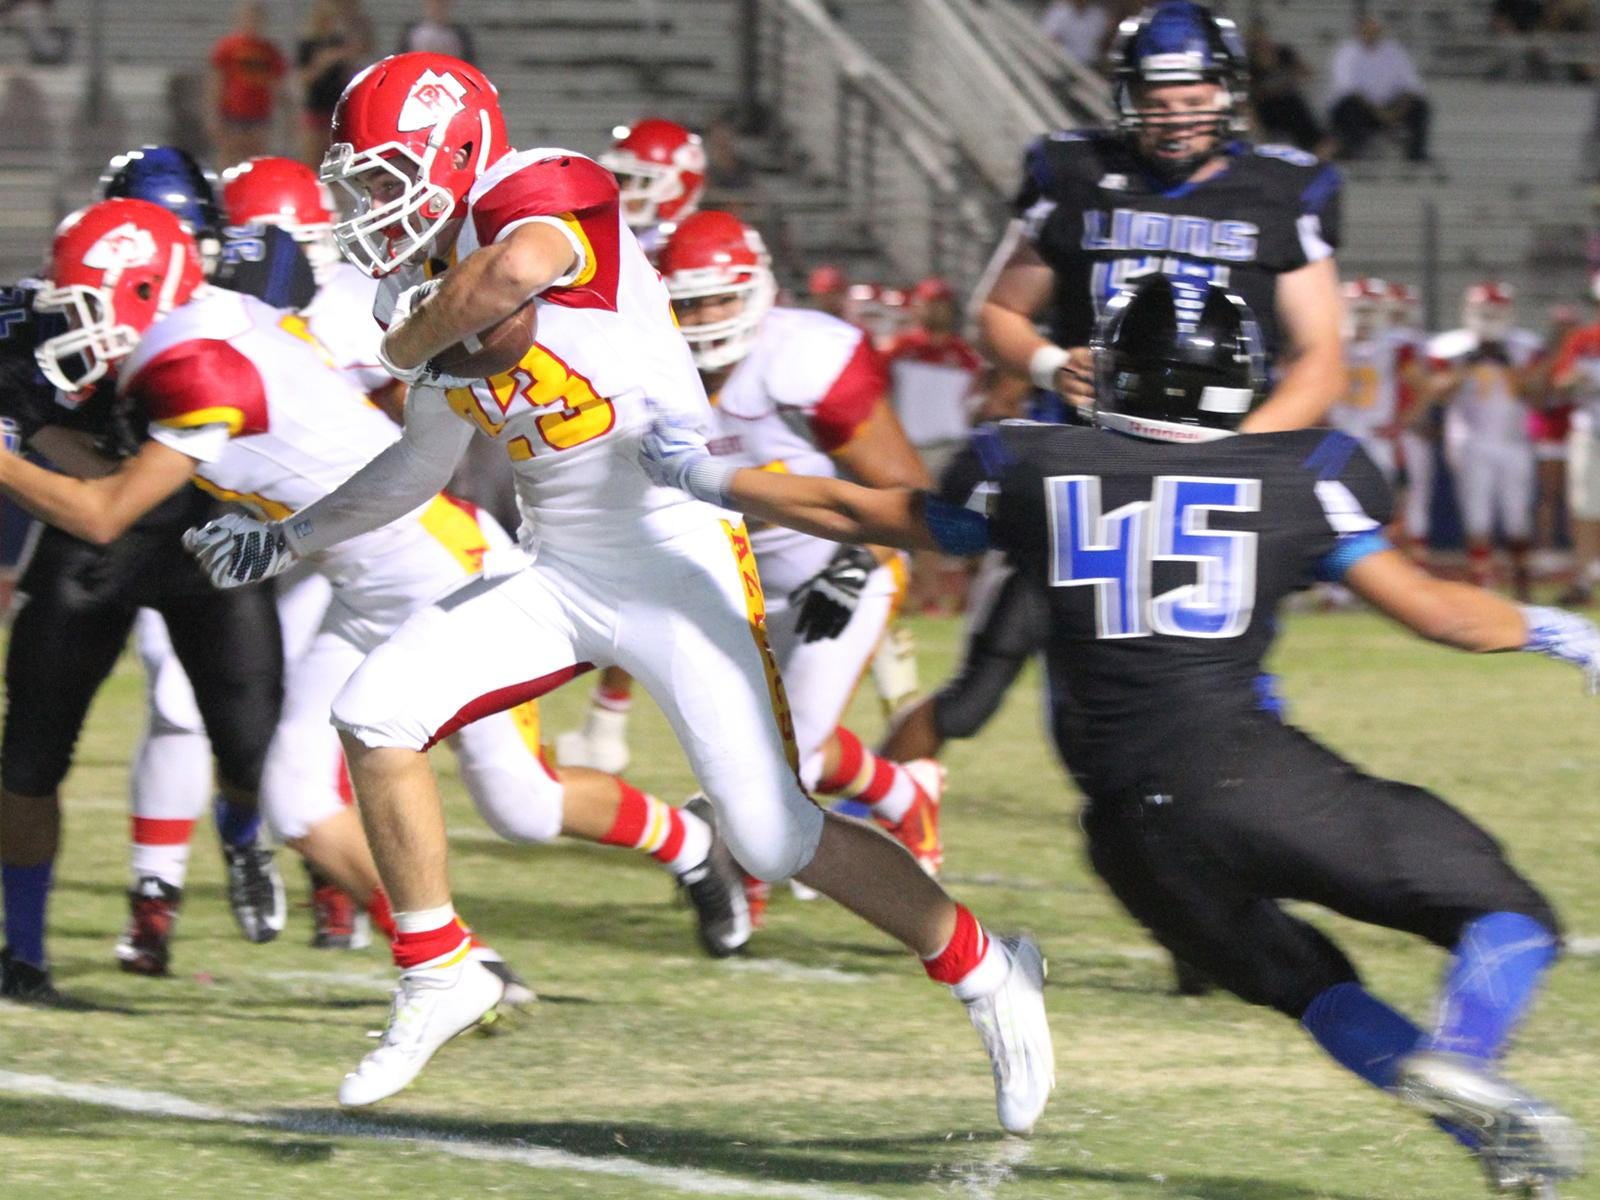 10/16/15 Taya Gray, Special to The Desert Sun Palm Desert's Beau Berryhill runs the ball during the first half of the game in Cathedral City on Friday, October 16, 2015.